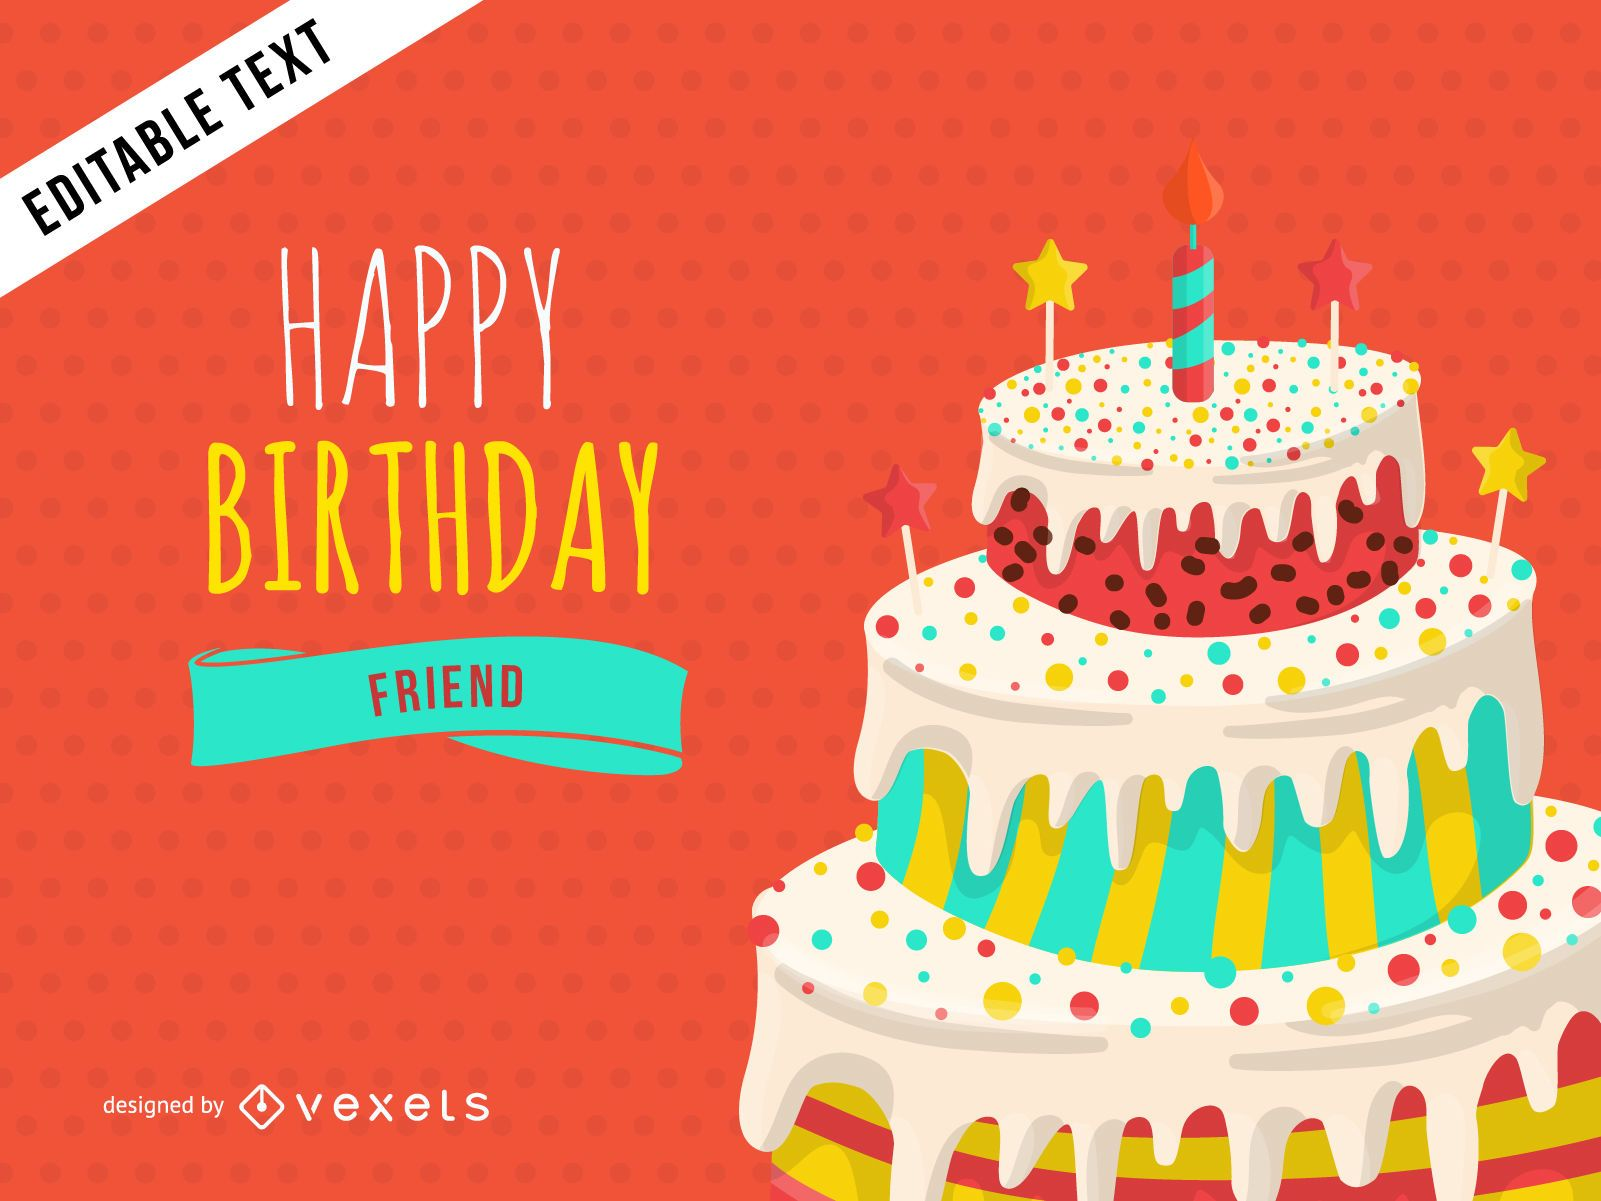 Happy Birthday Greeting Card Design Download Large Image 1601x1201px License User